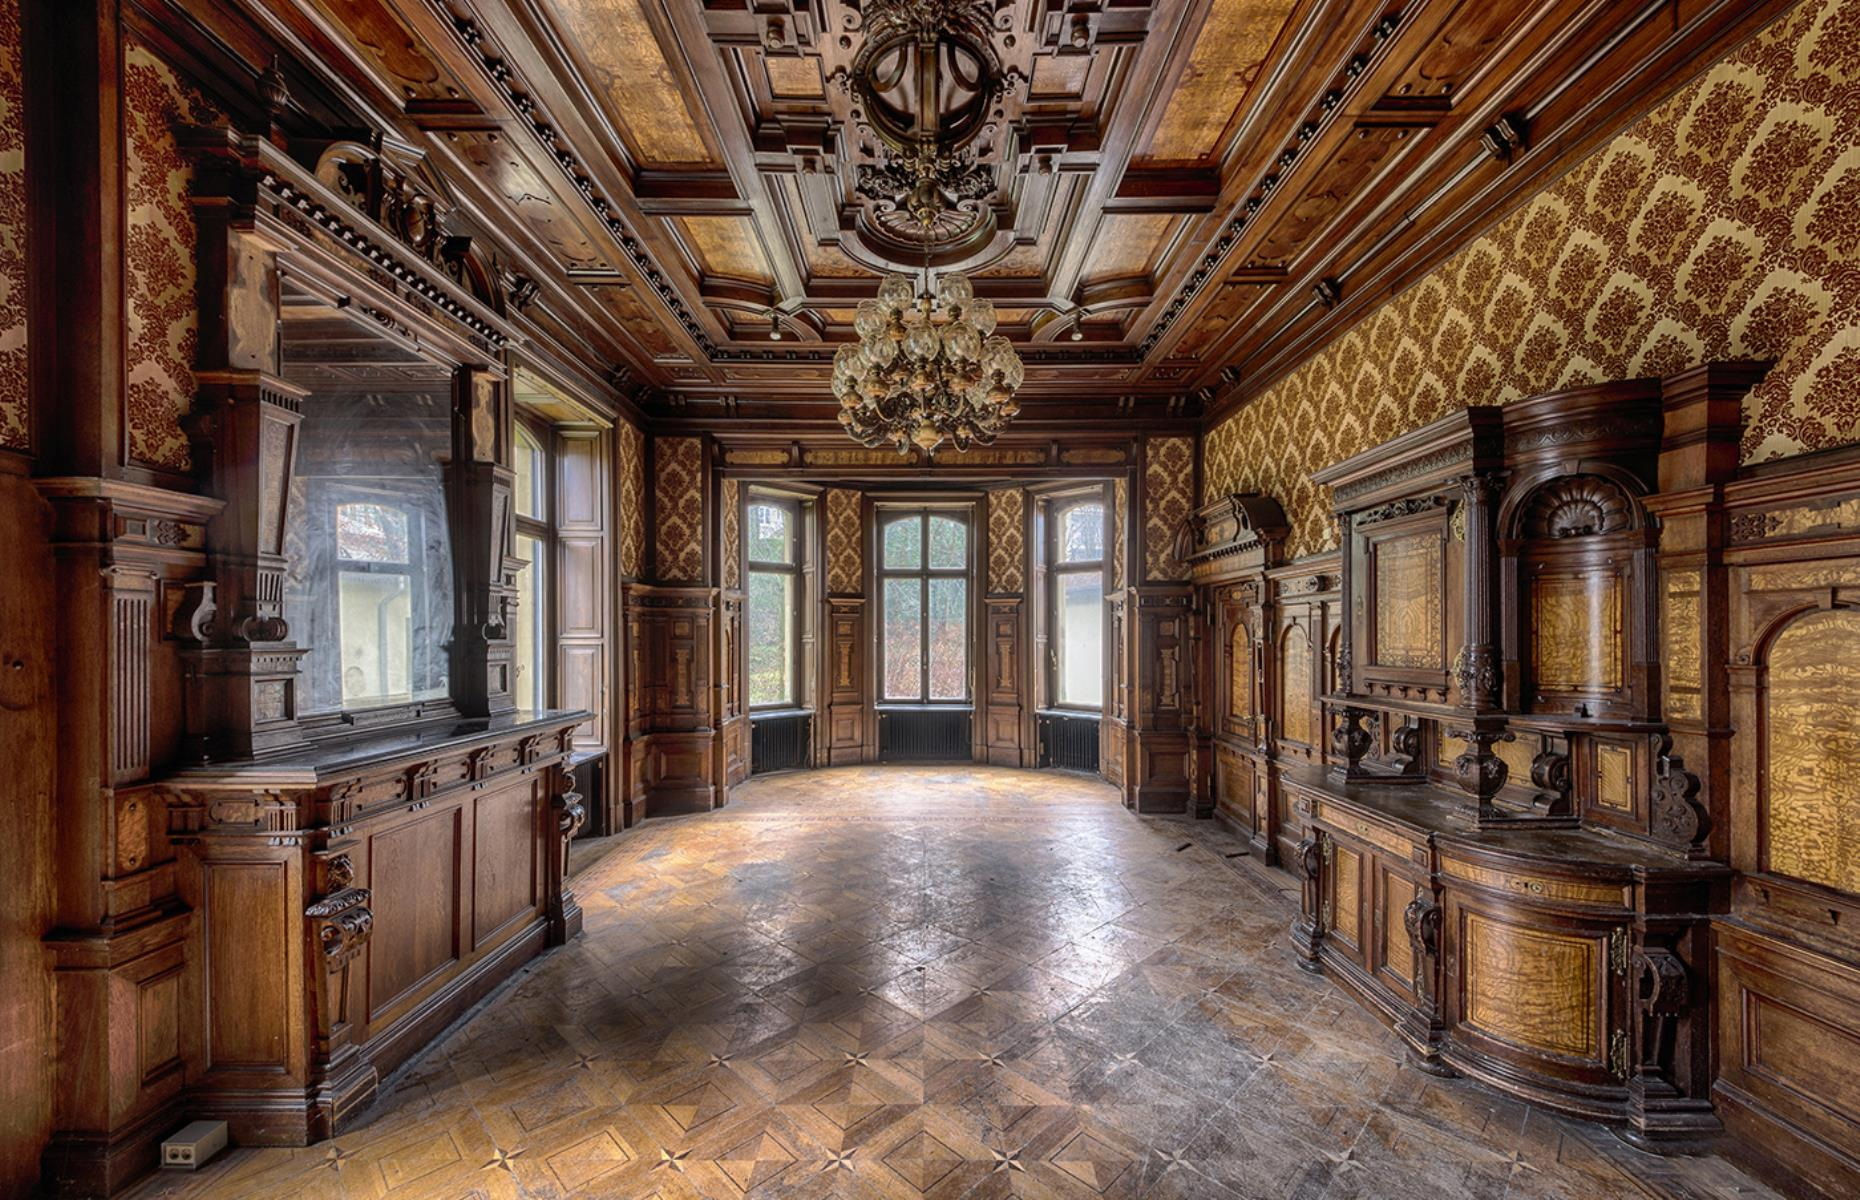 Slide 46 of 70: Also photographed by Brian, this castle in Germany – known as Villa Woodstock thanks to its glorious wooden interior – used to be a hotel and spa built in 1883. From 1990 it was used as a home for the elderly until it closed in 2012 and was left abandoned.